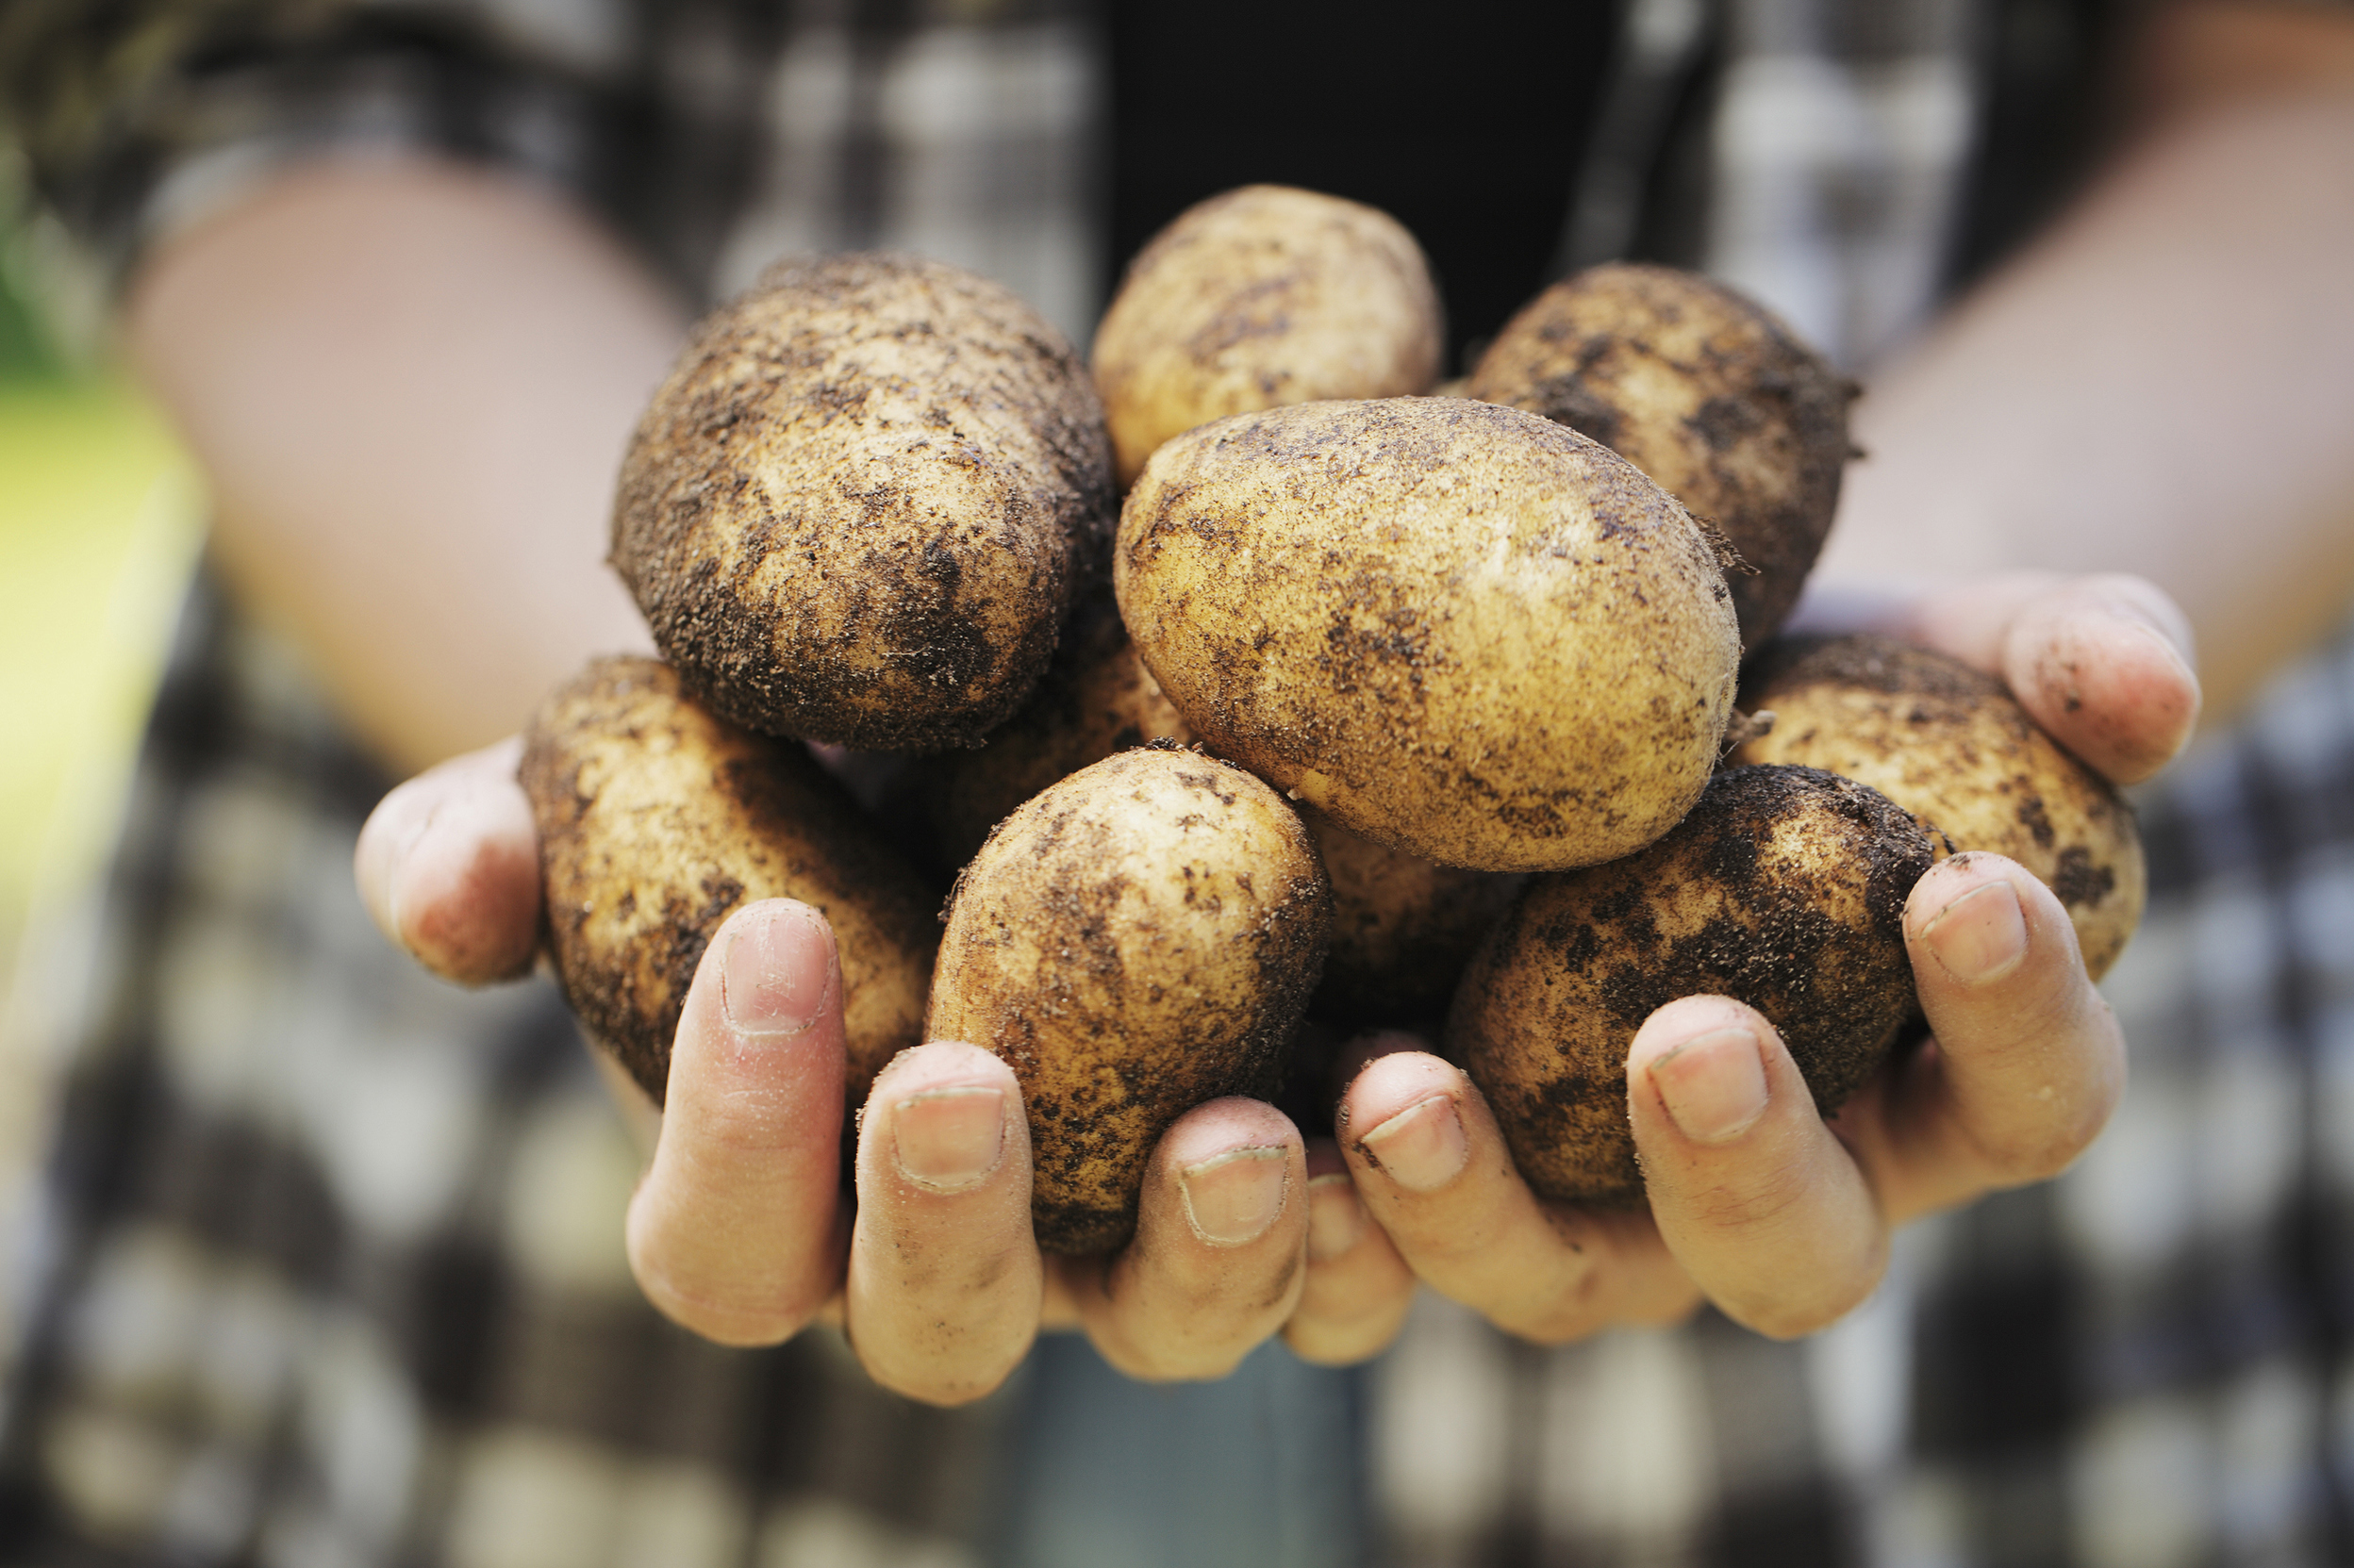 Farmers could save 10-15% of their fertiliser costs and produce more potatoes.